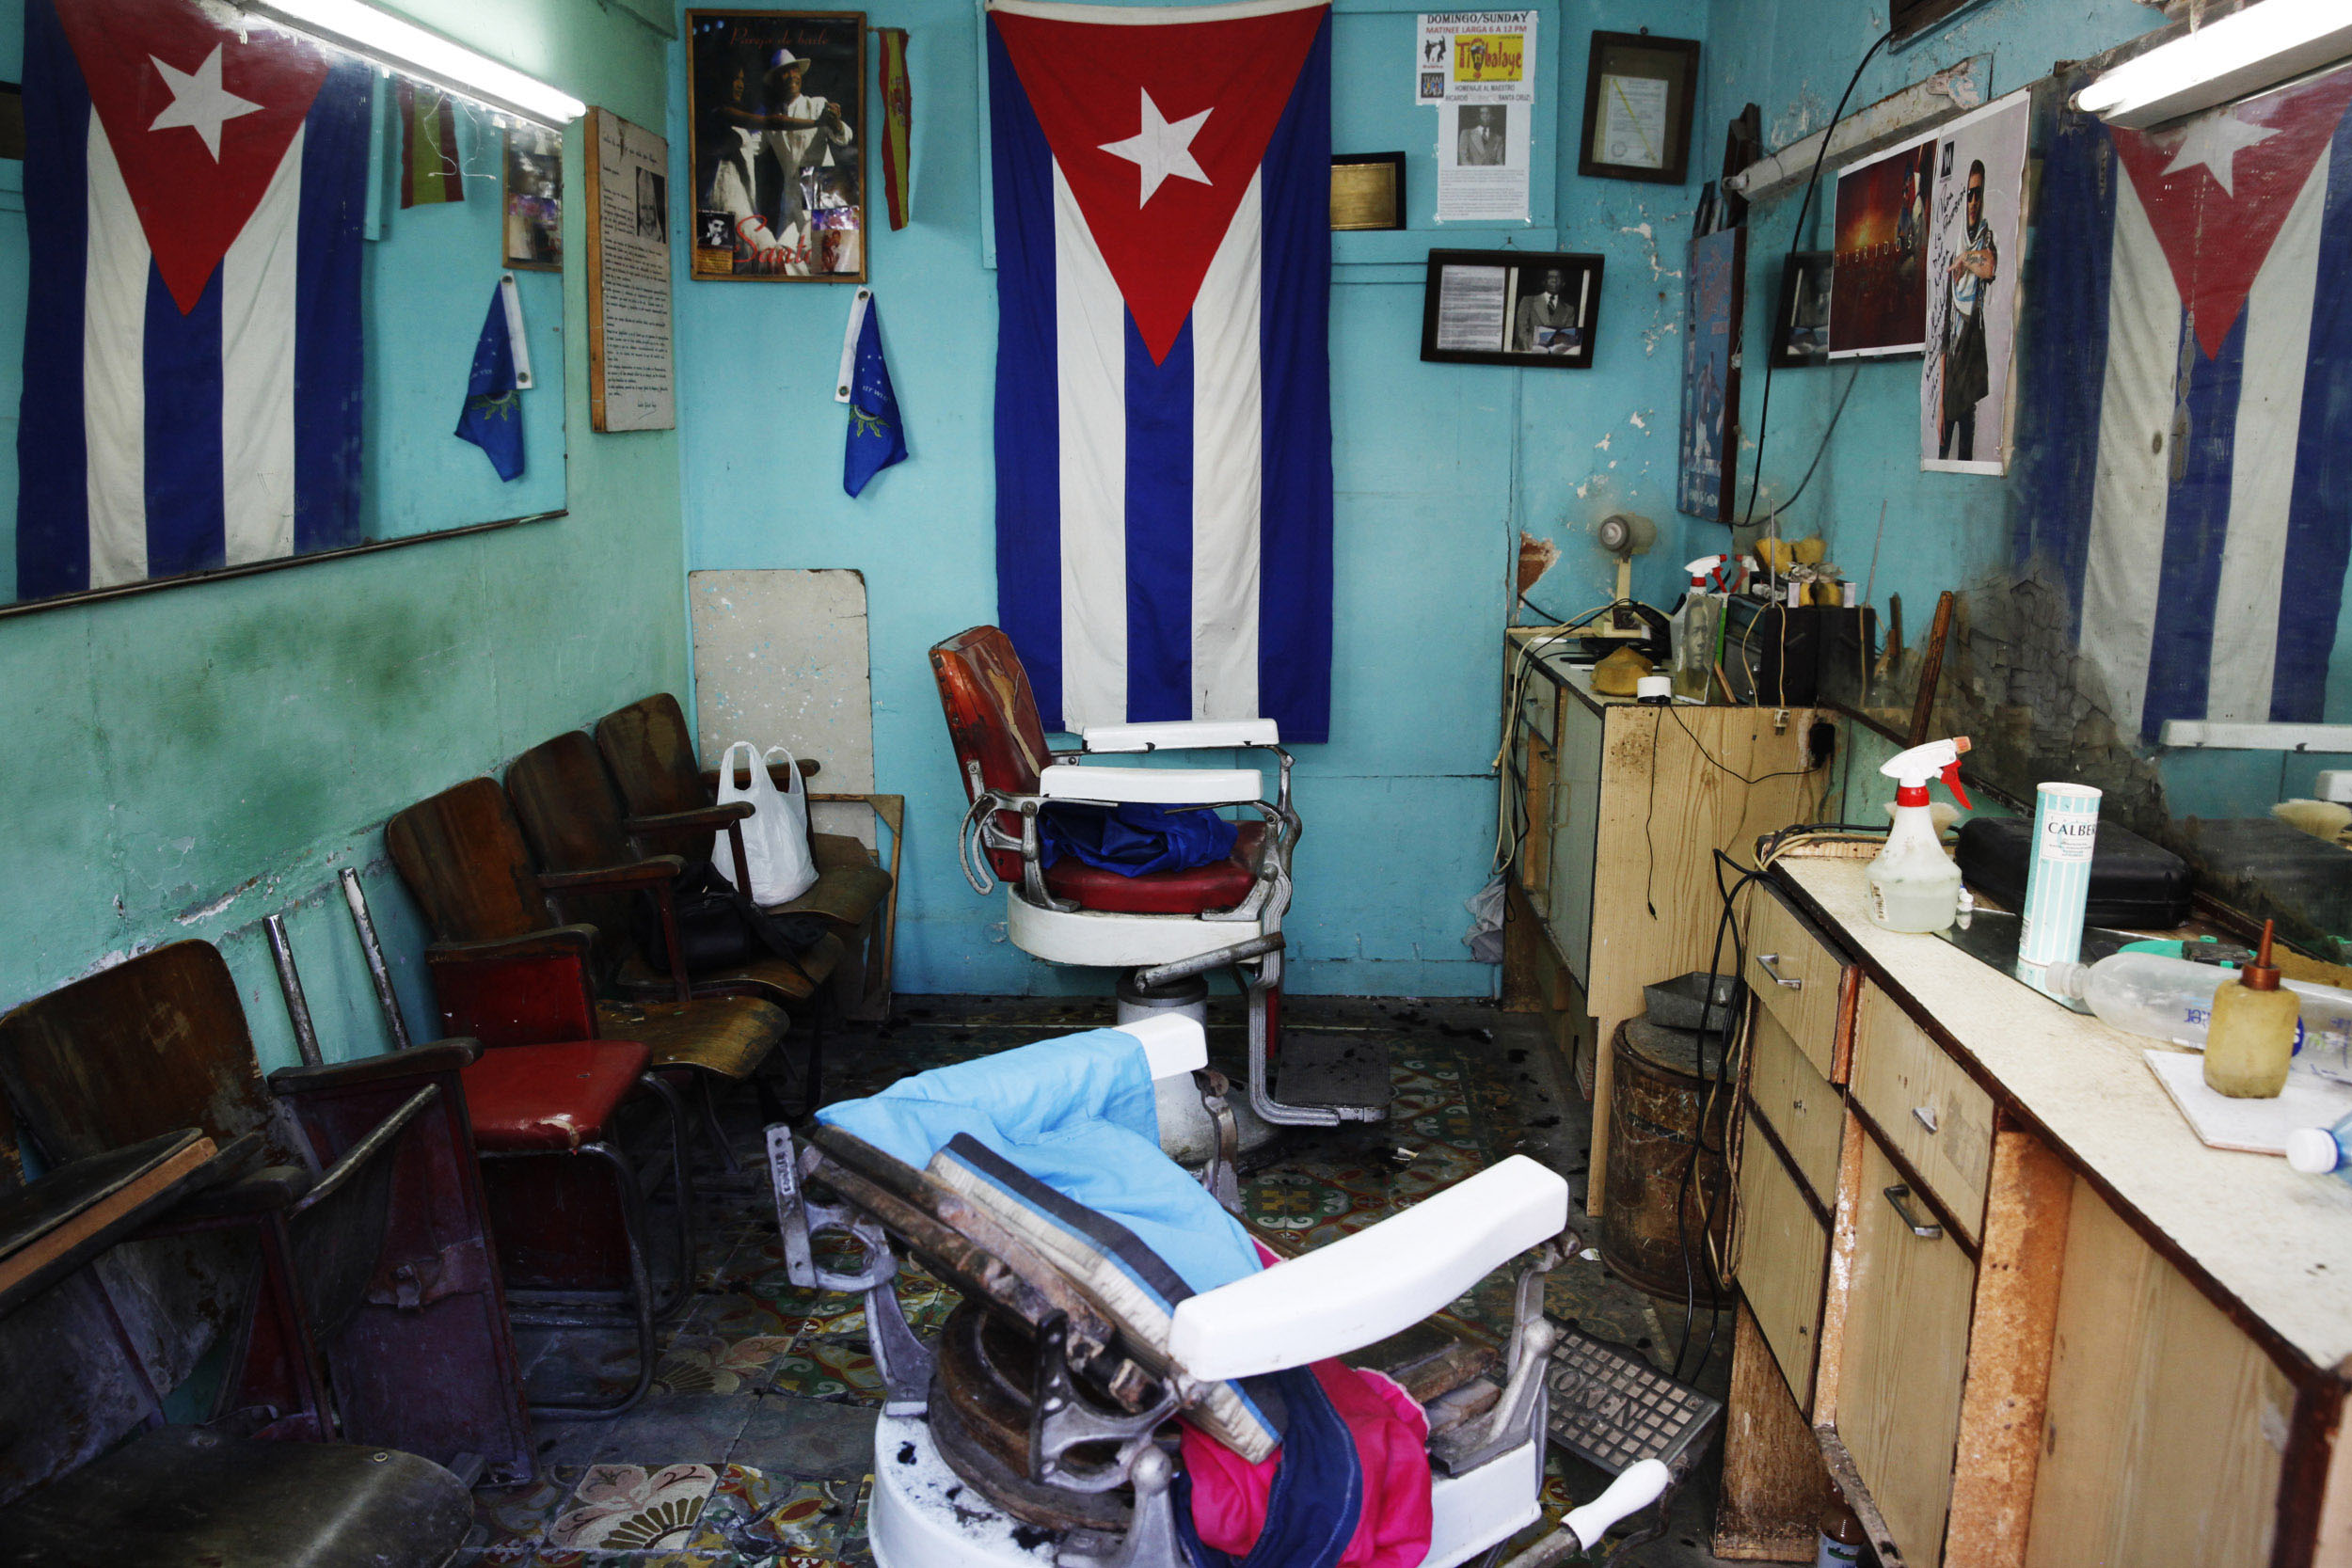 """Young Cuban men could be described as """"dandies"""", as they strut peacock-like around the streets. They take great pride in their hairstyles, with names like """"El Yonki"""" and """"Tiburon"""", that they get sculpted and fashioned in barbershops all over Havana,late into the night."""